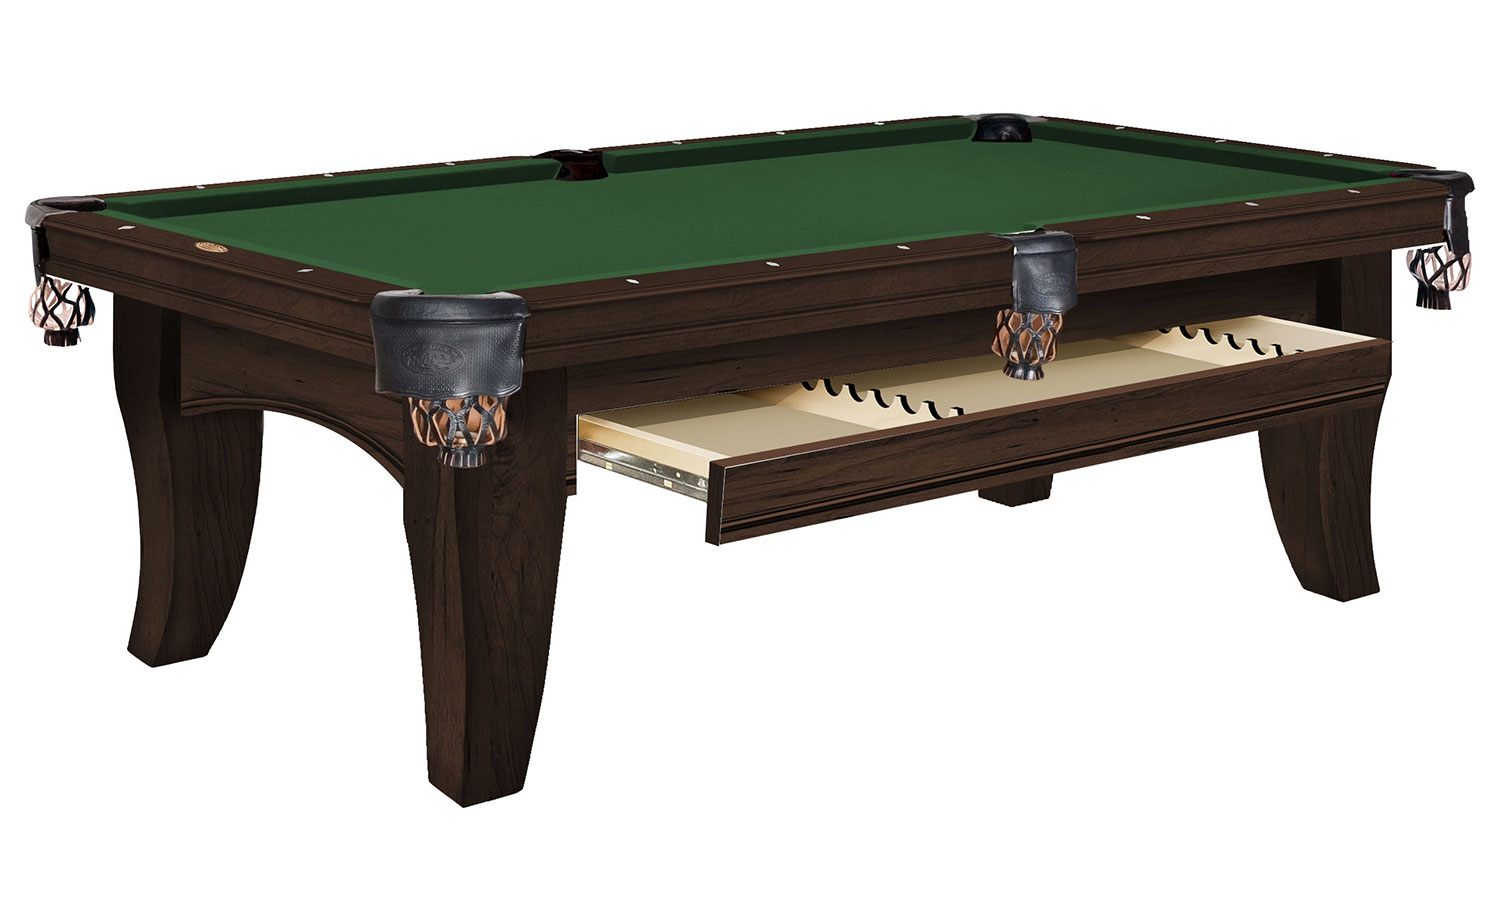 Olhausen Chicago Pool TableShop Olhausen Pool Tables - American heritage madison pool table